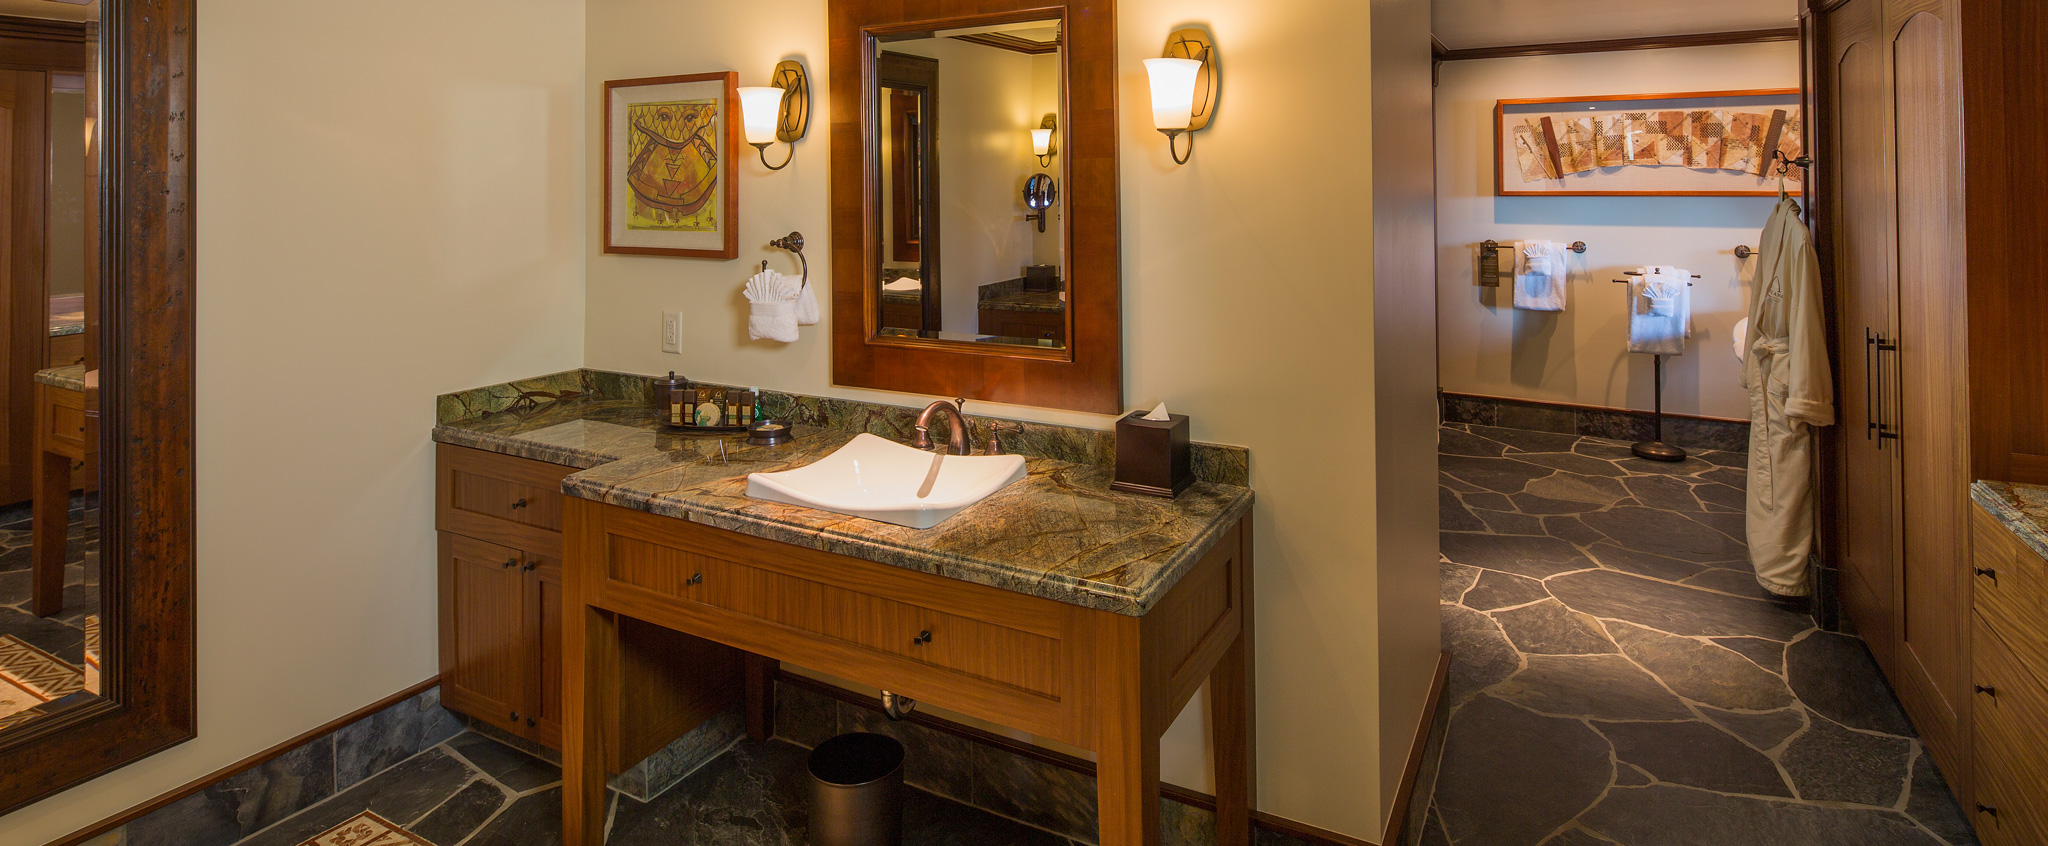 ... A Bathroom In A 2 Bedroom Suite Includes A Sink, Large Granite  Countertop, ...